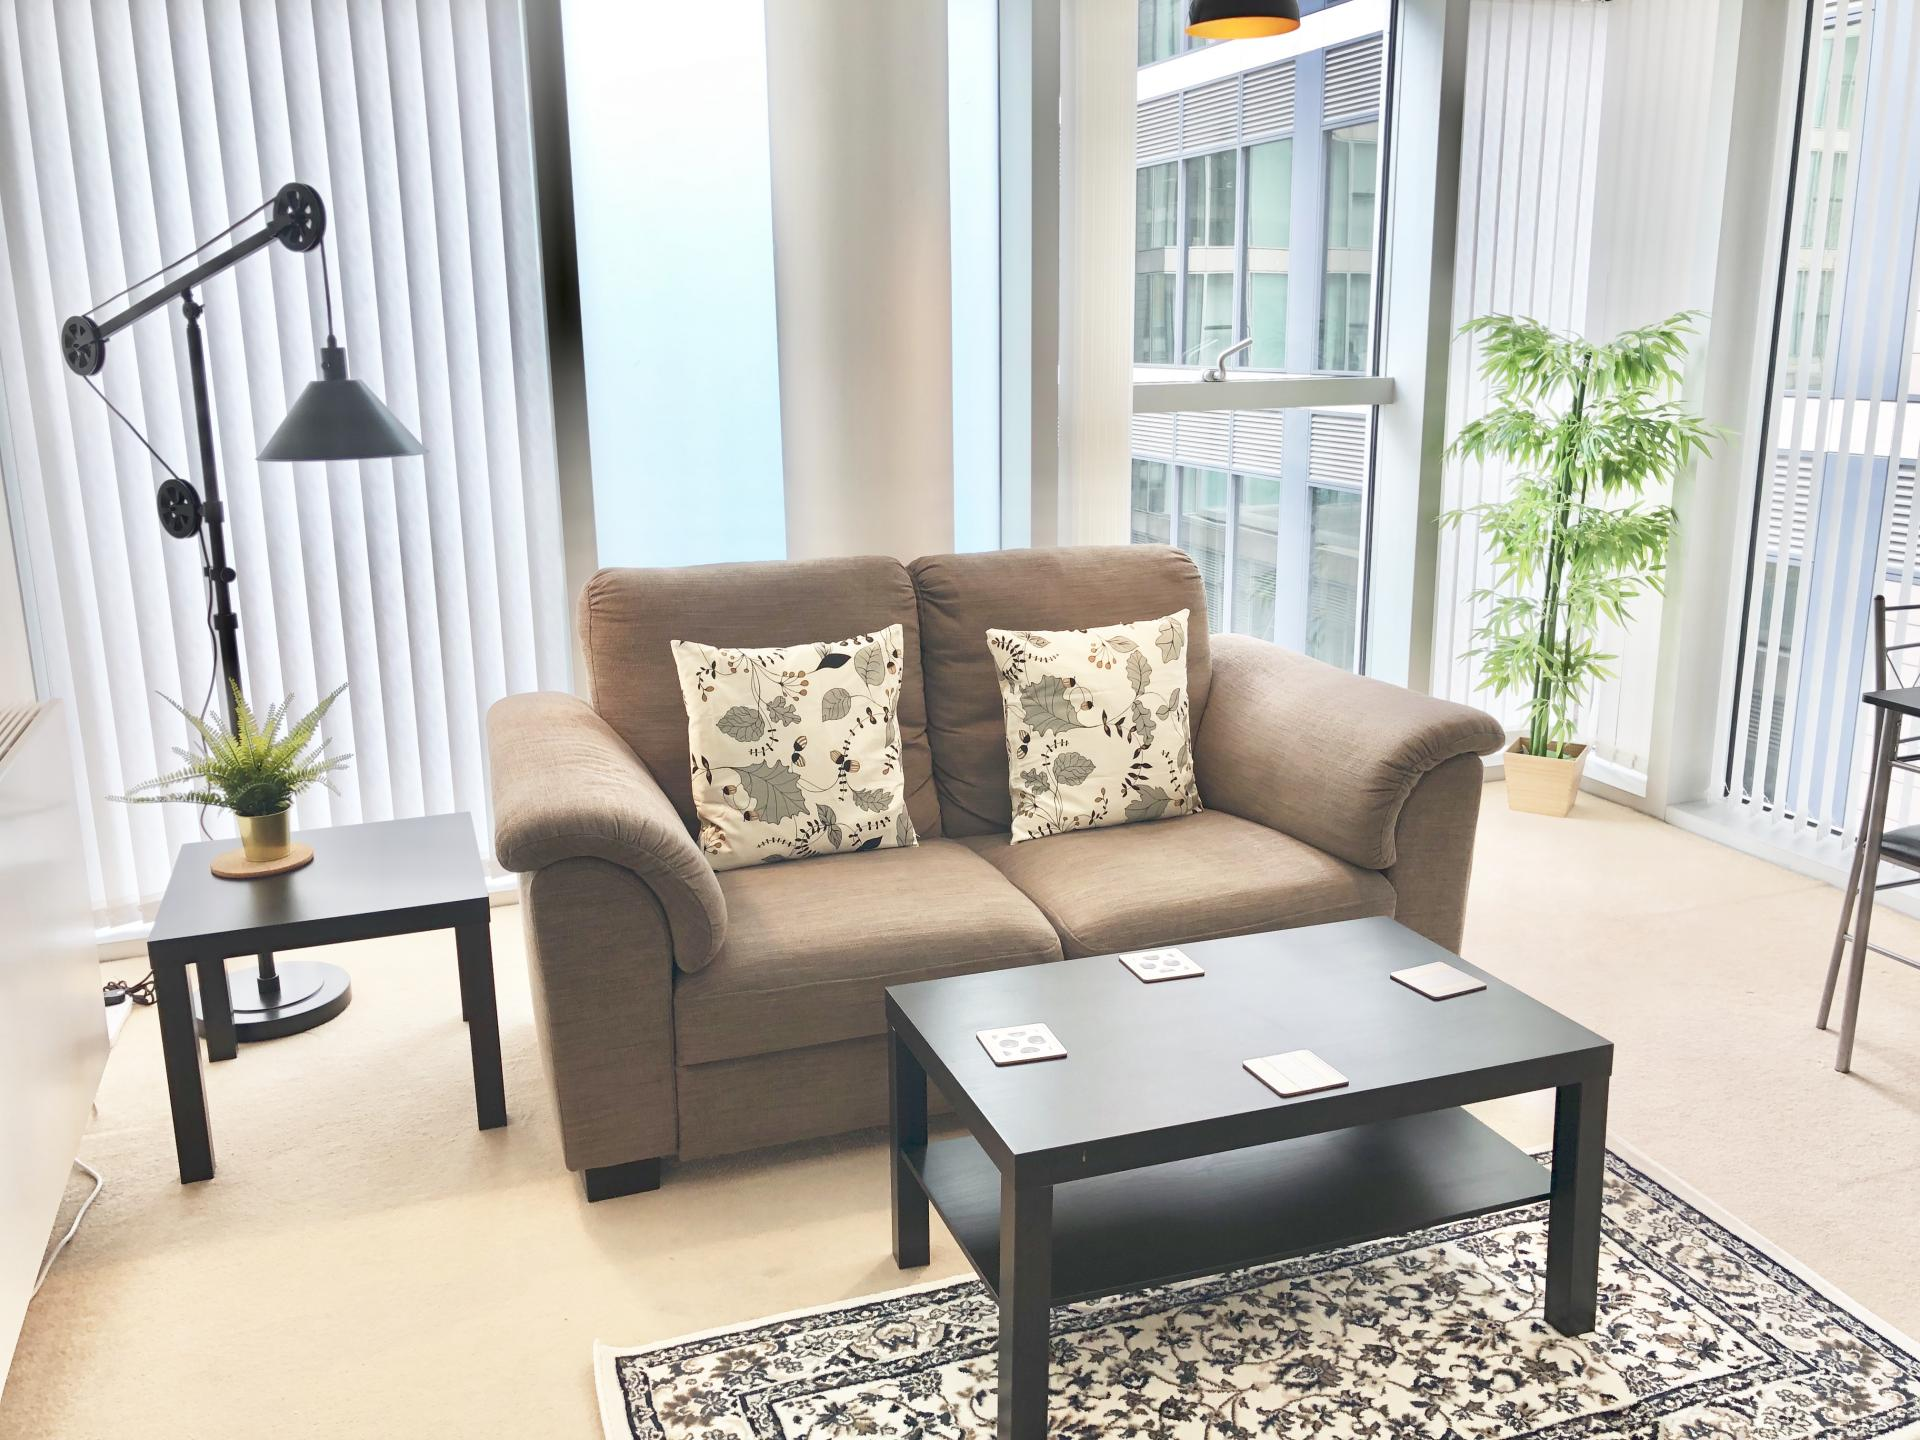 Coffee table at The Hub Serviced Apartments - Citybase Apartments